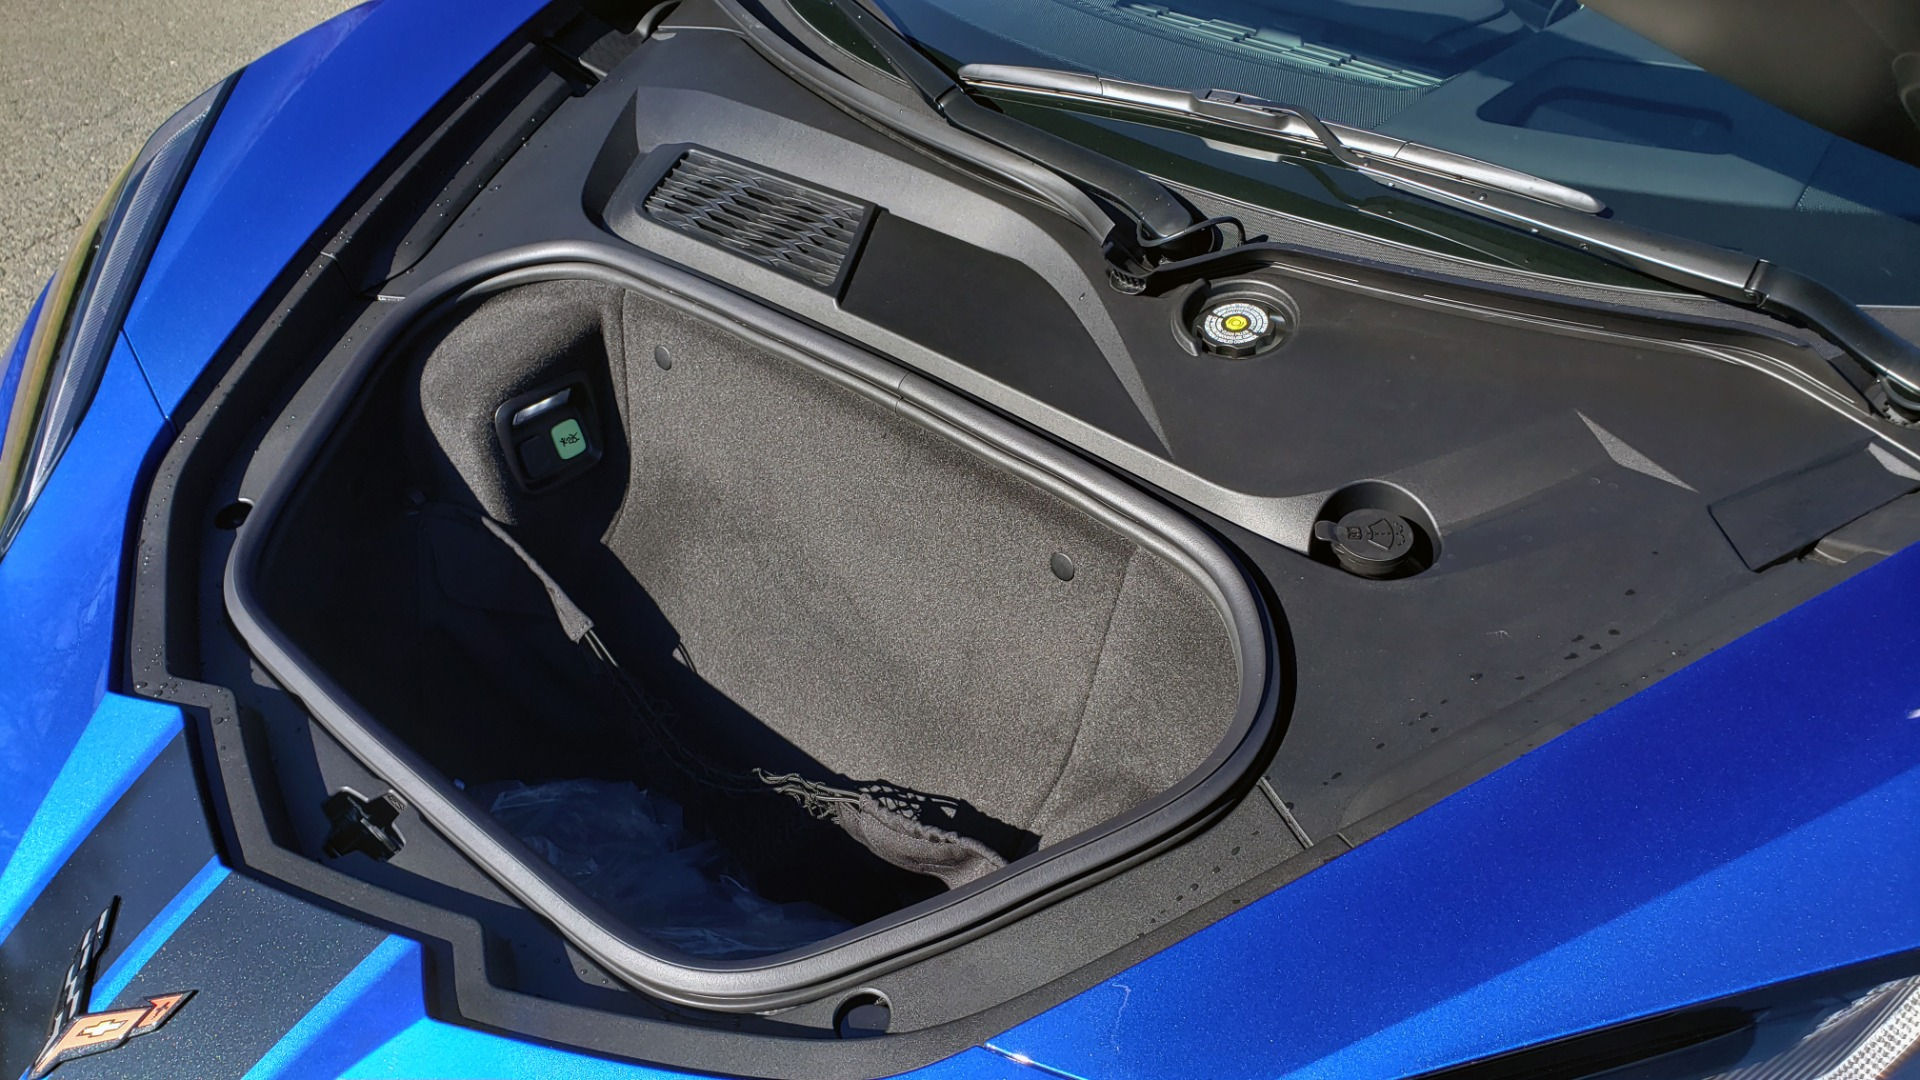 Used 2020 Chevrolet C8 CORVETTE STINGRAY 2LT COUPE / NAV / HUD / BOSE / GT2 SEATS / FRONT LIFT / REARVIEW for sale Sold at Formula Imports in Charlotte NC 28227 40